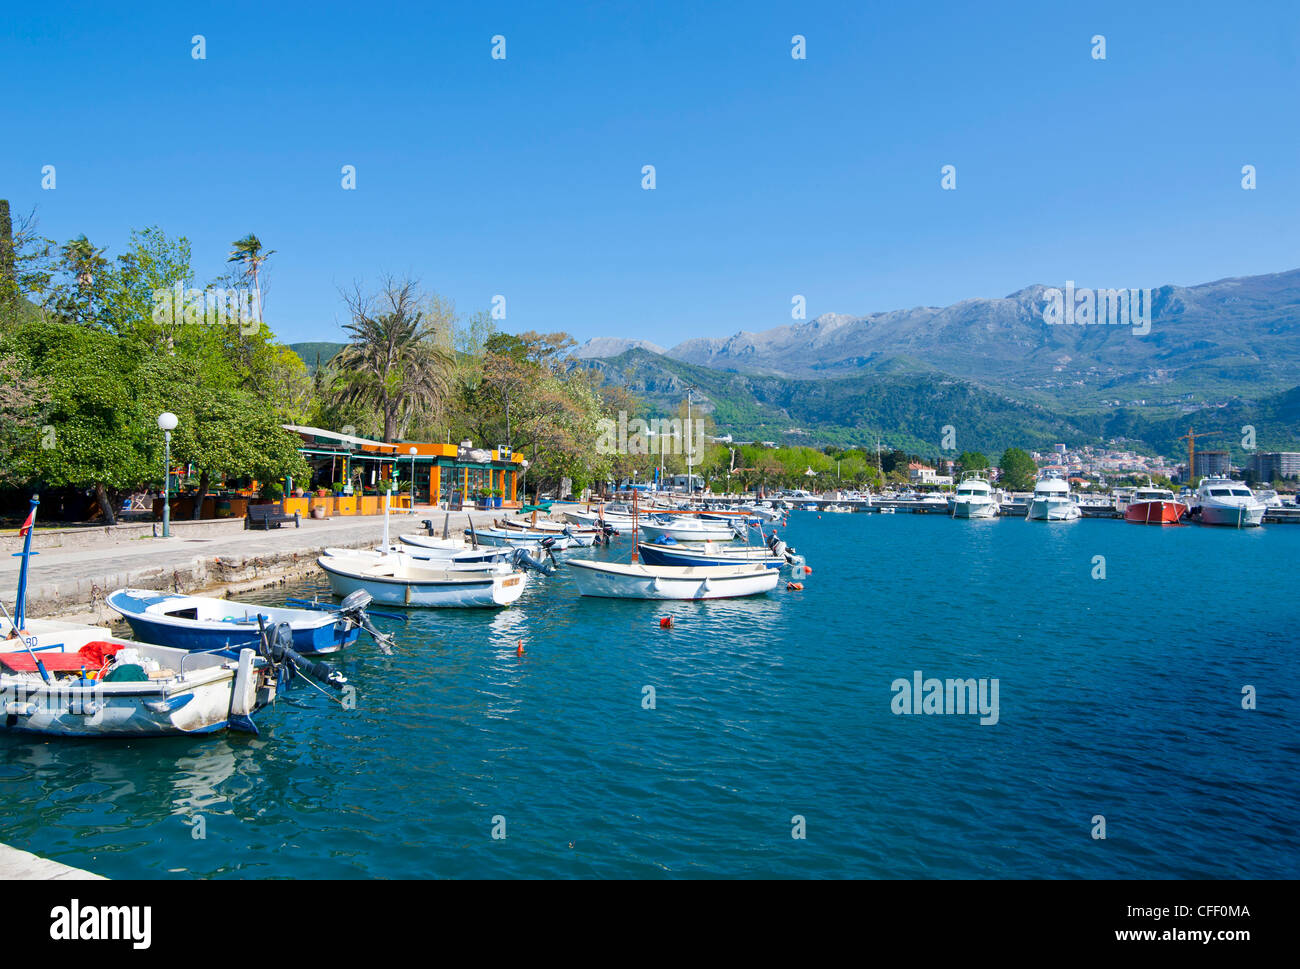 Little boats in the harbour of the old town of Budva, Montenegro, Europe - Stock Image